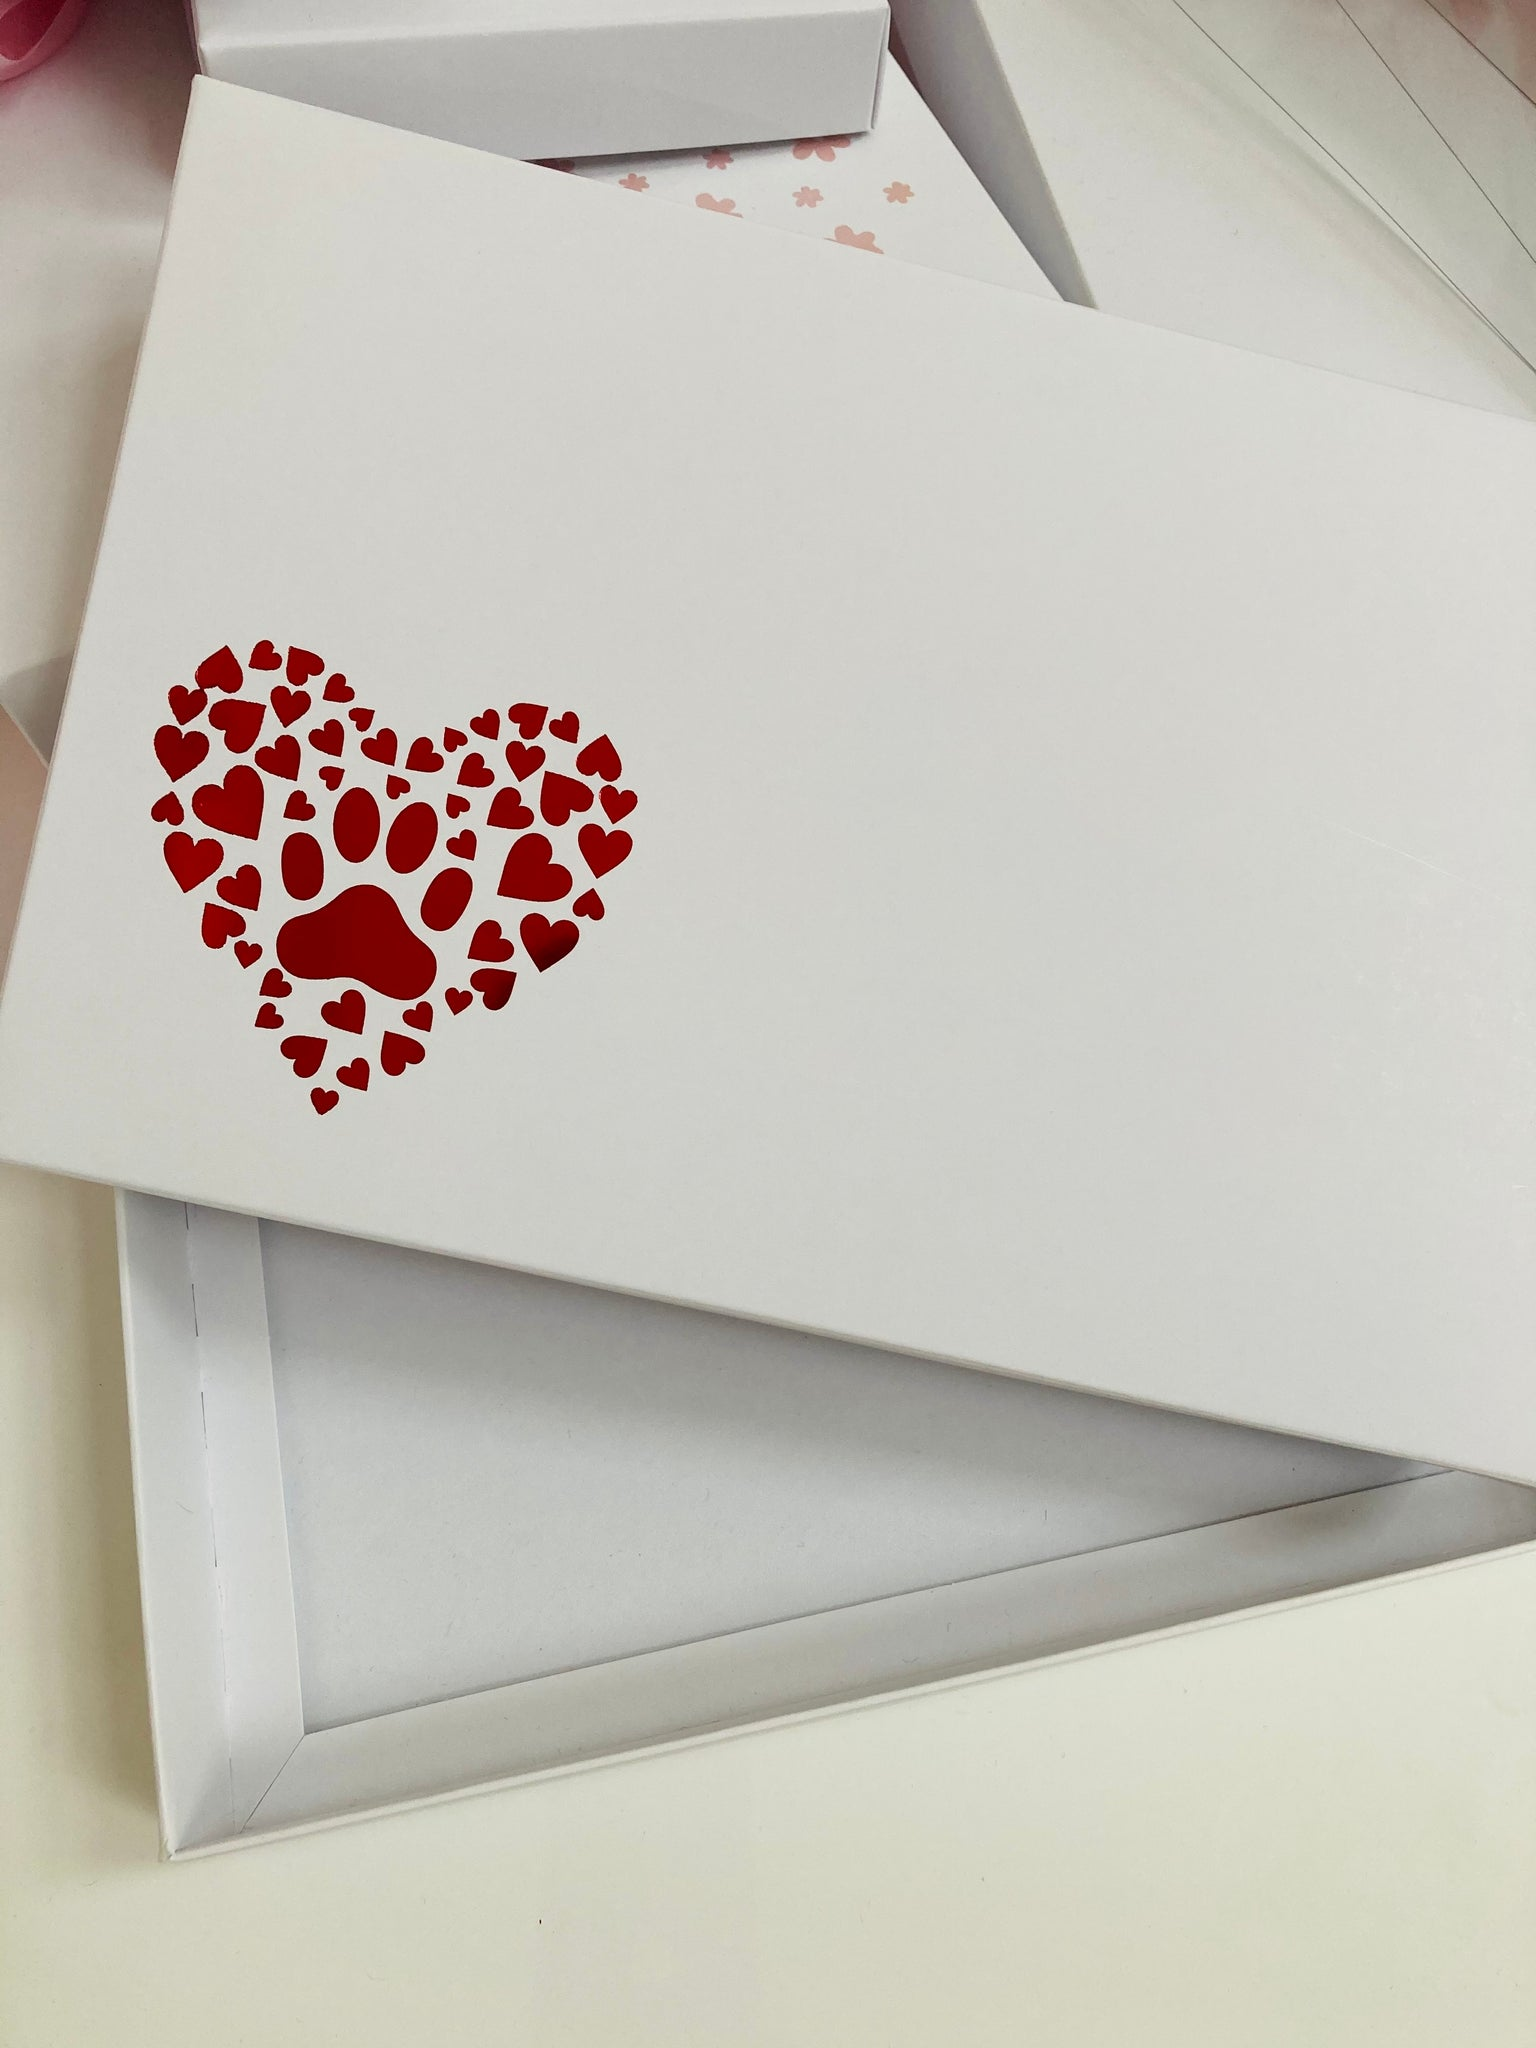 RED PAW PRINT HEART SOLID WHITE LID GIFT BOX BLANK 240x155x30mm